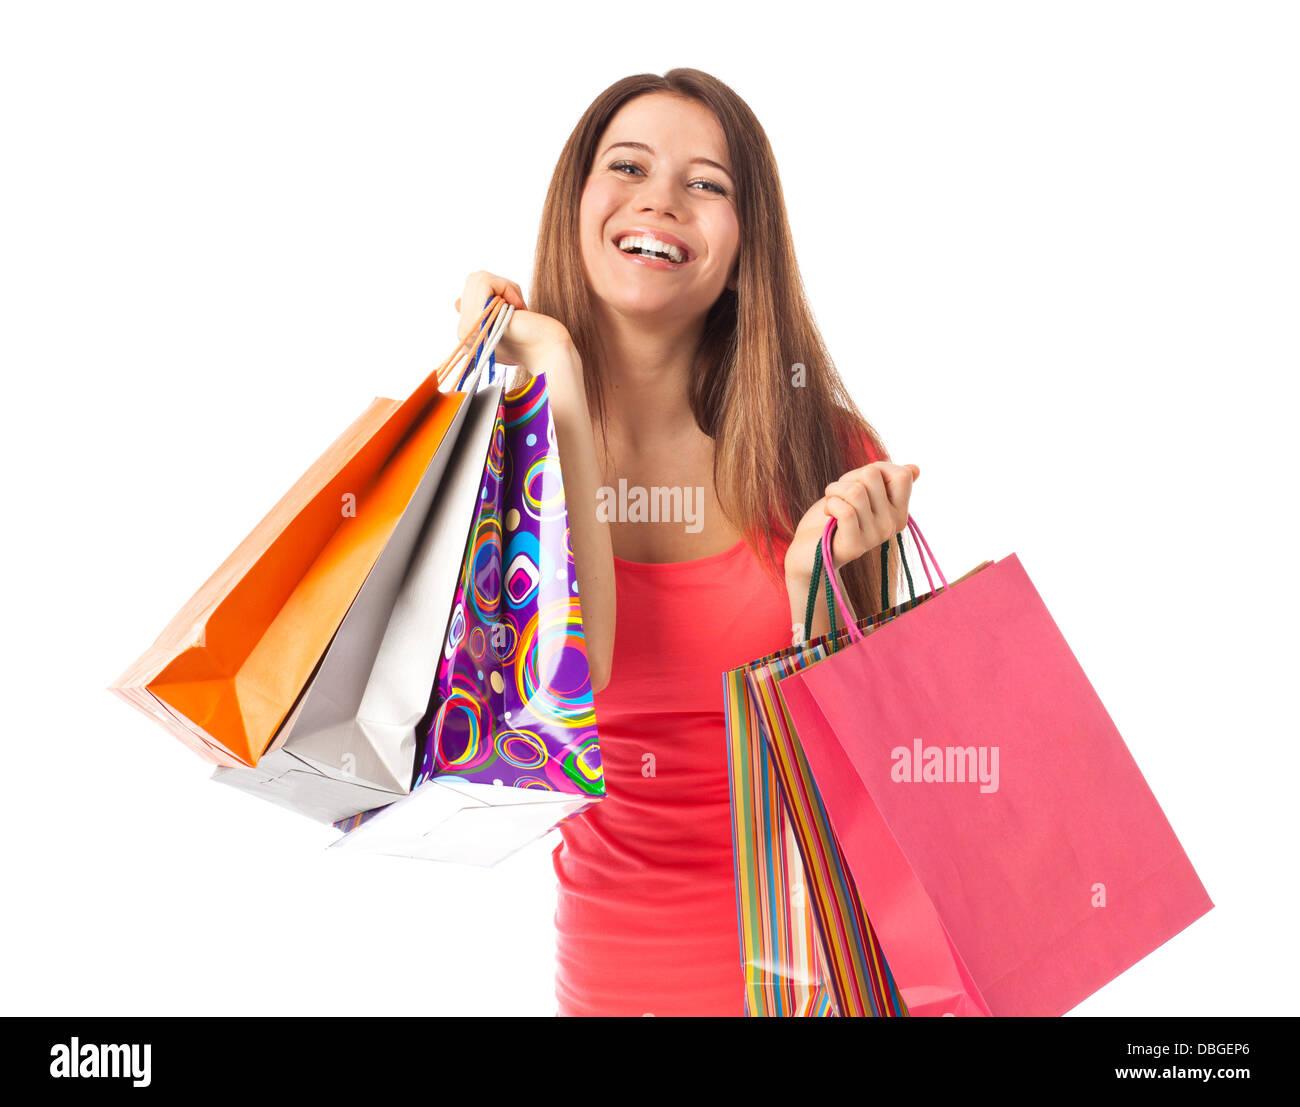 Happy woman with shopping bags, isolated on white - Stock Image